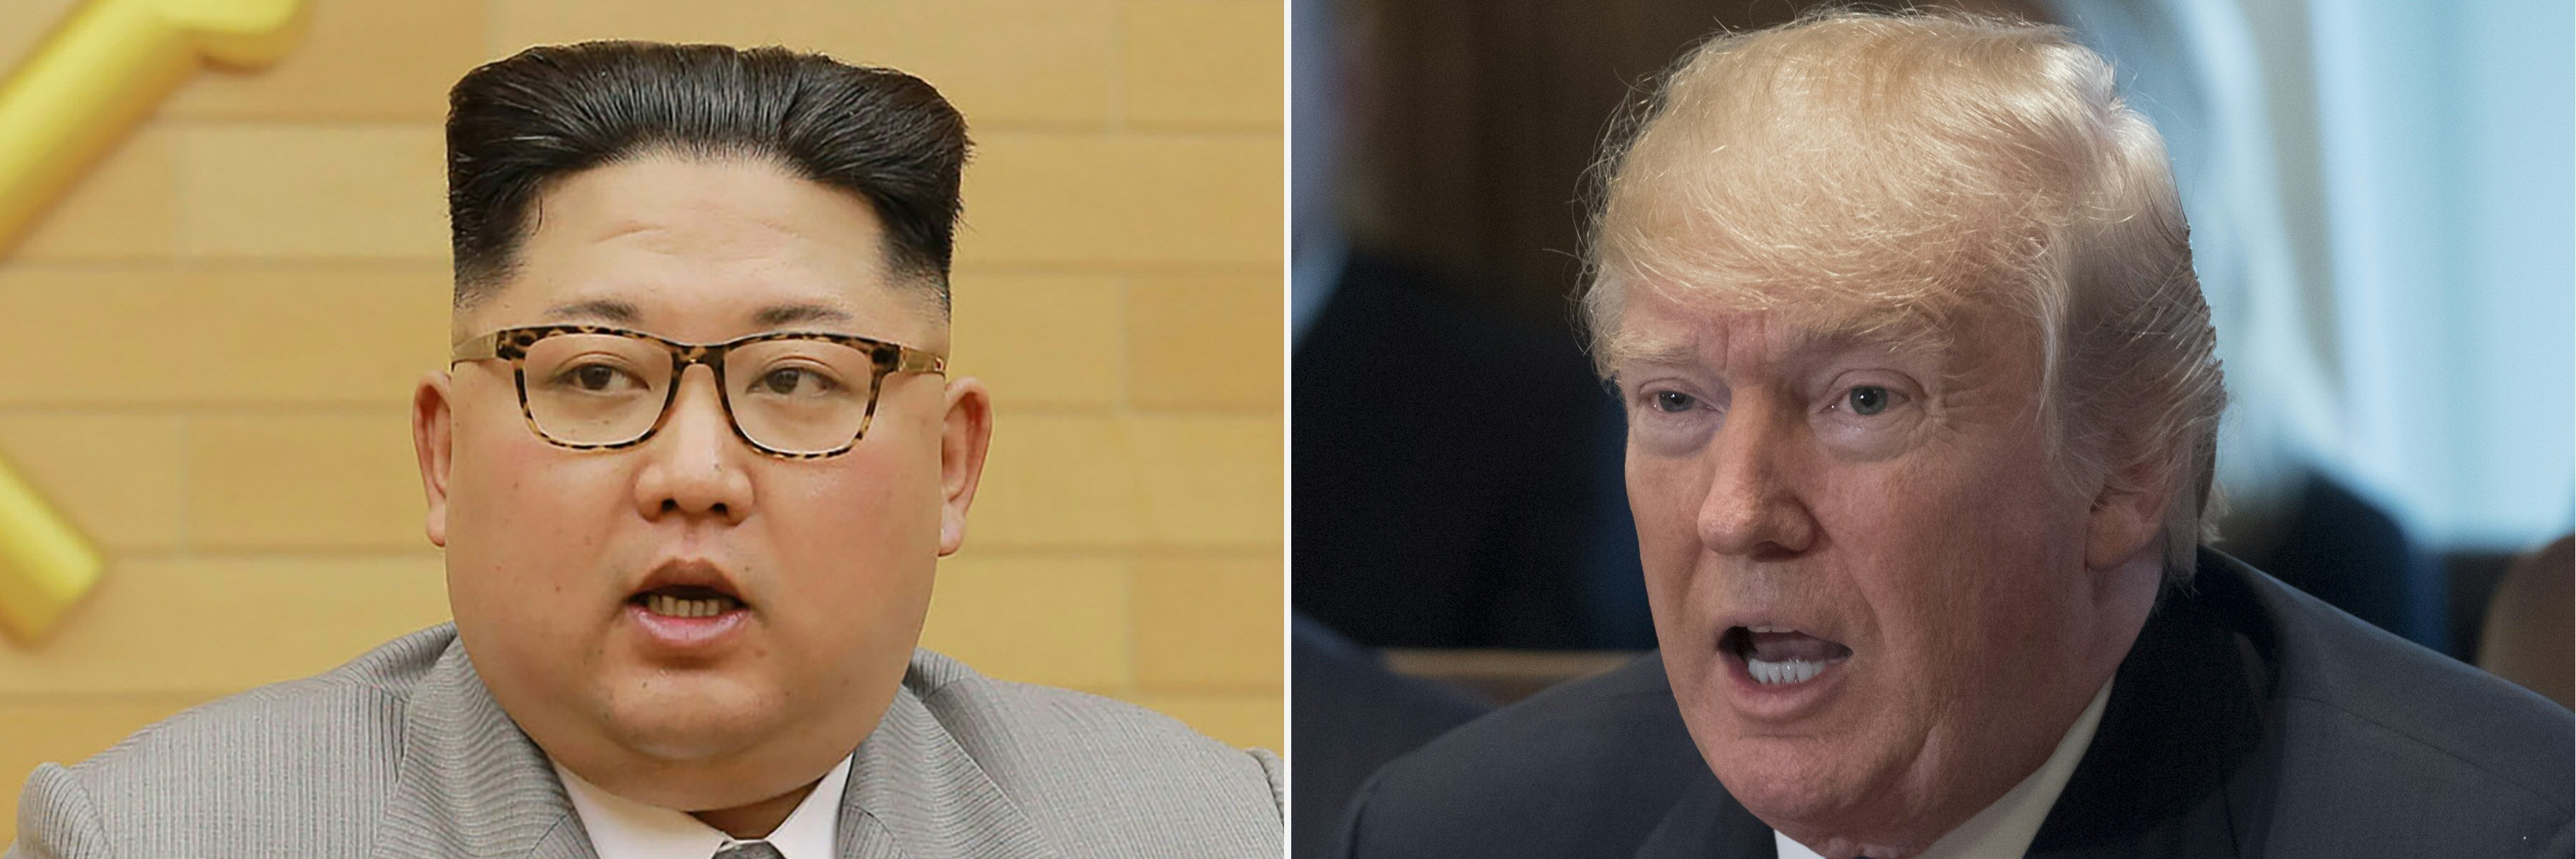 """In another tweet, President Trump again referred to North Korean leader Kim Jong Un as """"Rocket man"""" and implied that U.S.-led sanctions against Pyongyang had caused the regime to open dialogue with Seoul."""